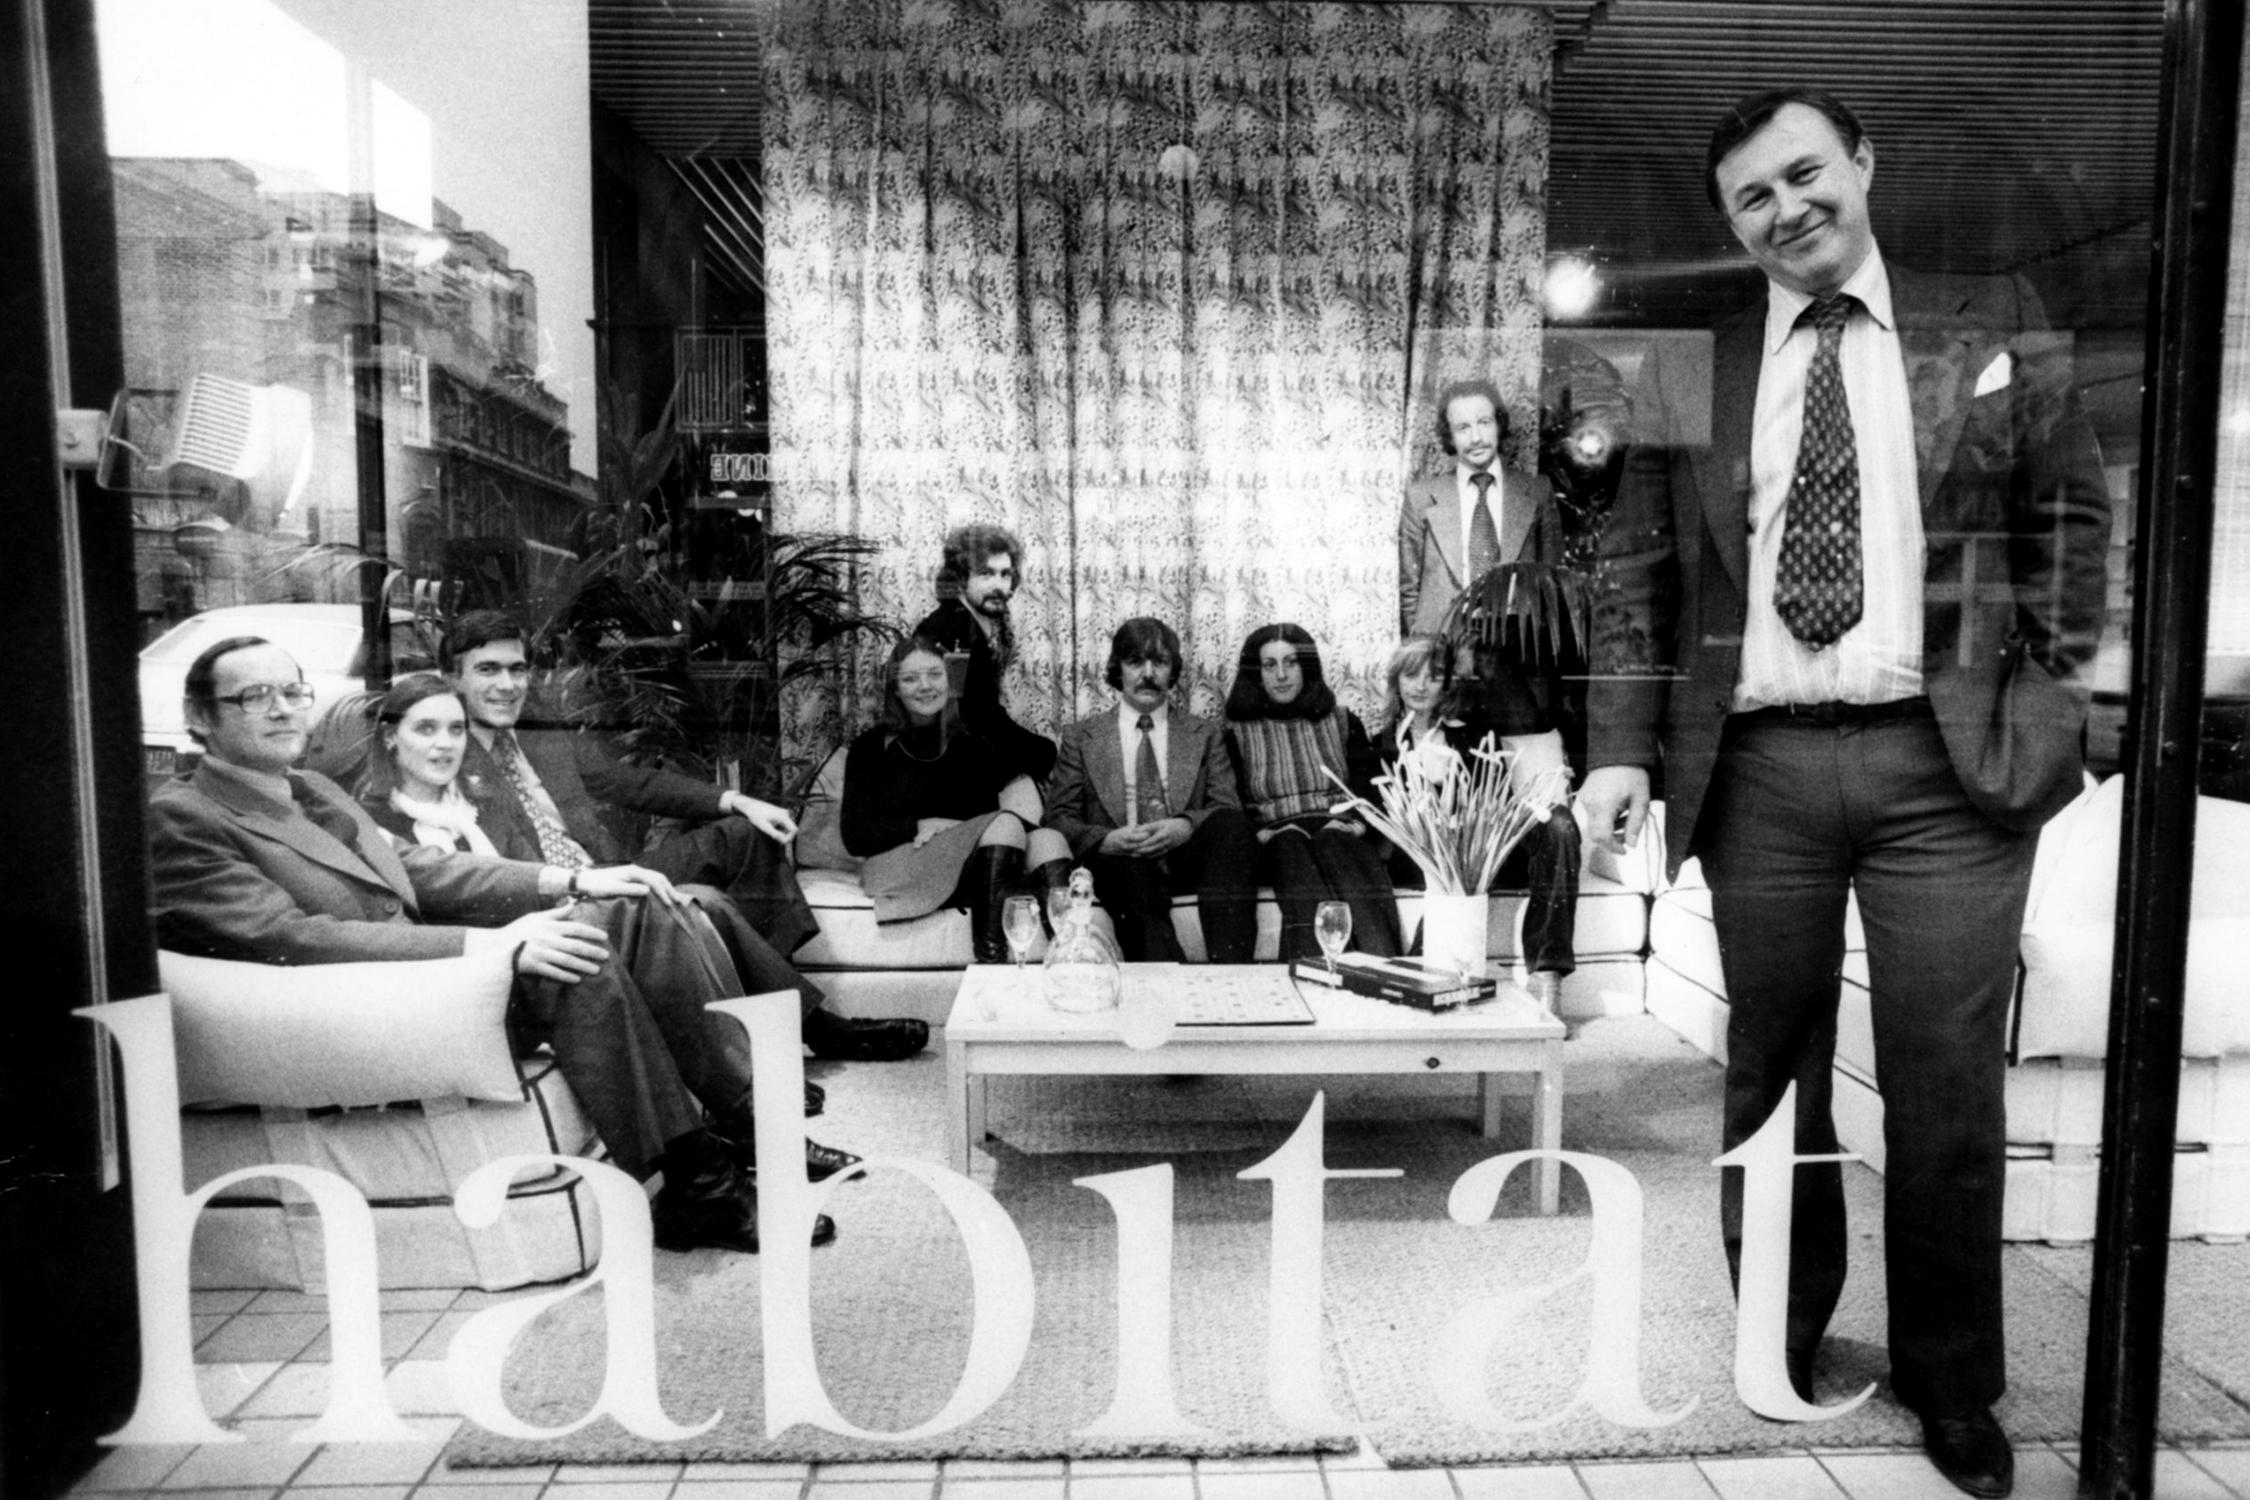 Black and white vintage photo advertising design store Habitat when it originally opened. With a man in a suit stood smiling out of a large shop front window whilst a team of staff are sat on a large sofa behind him.